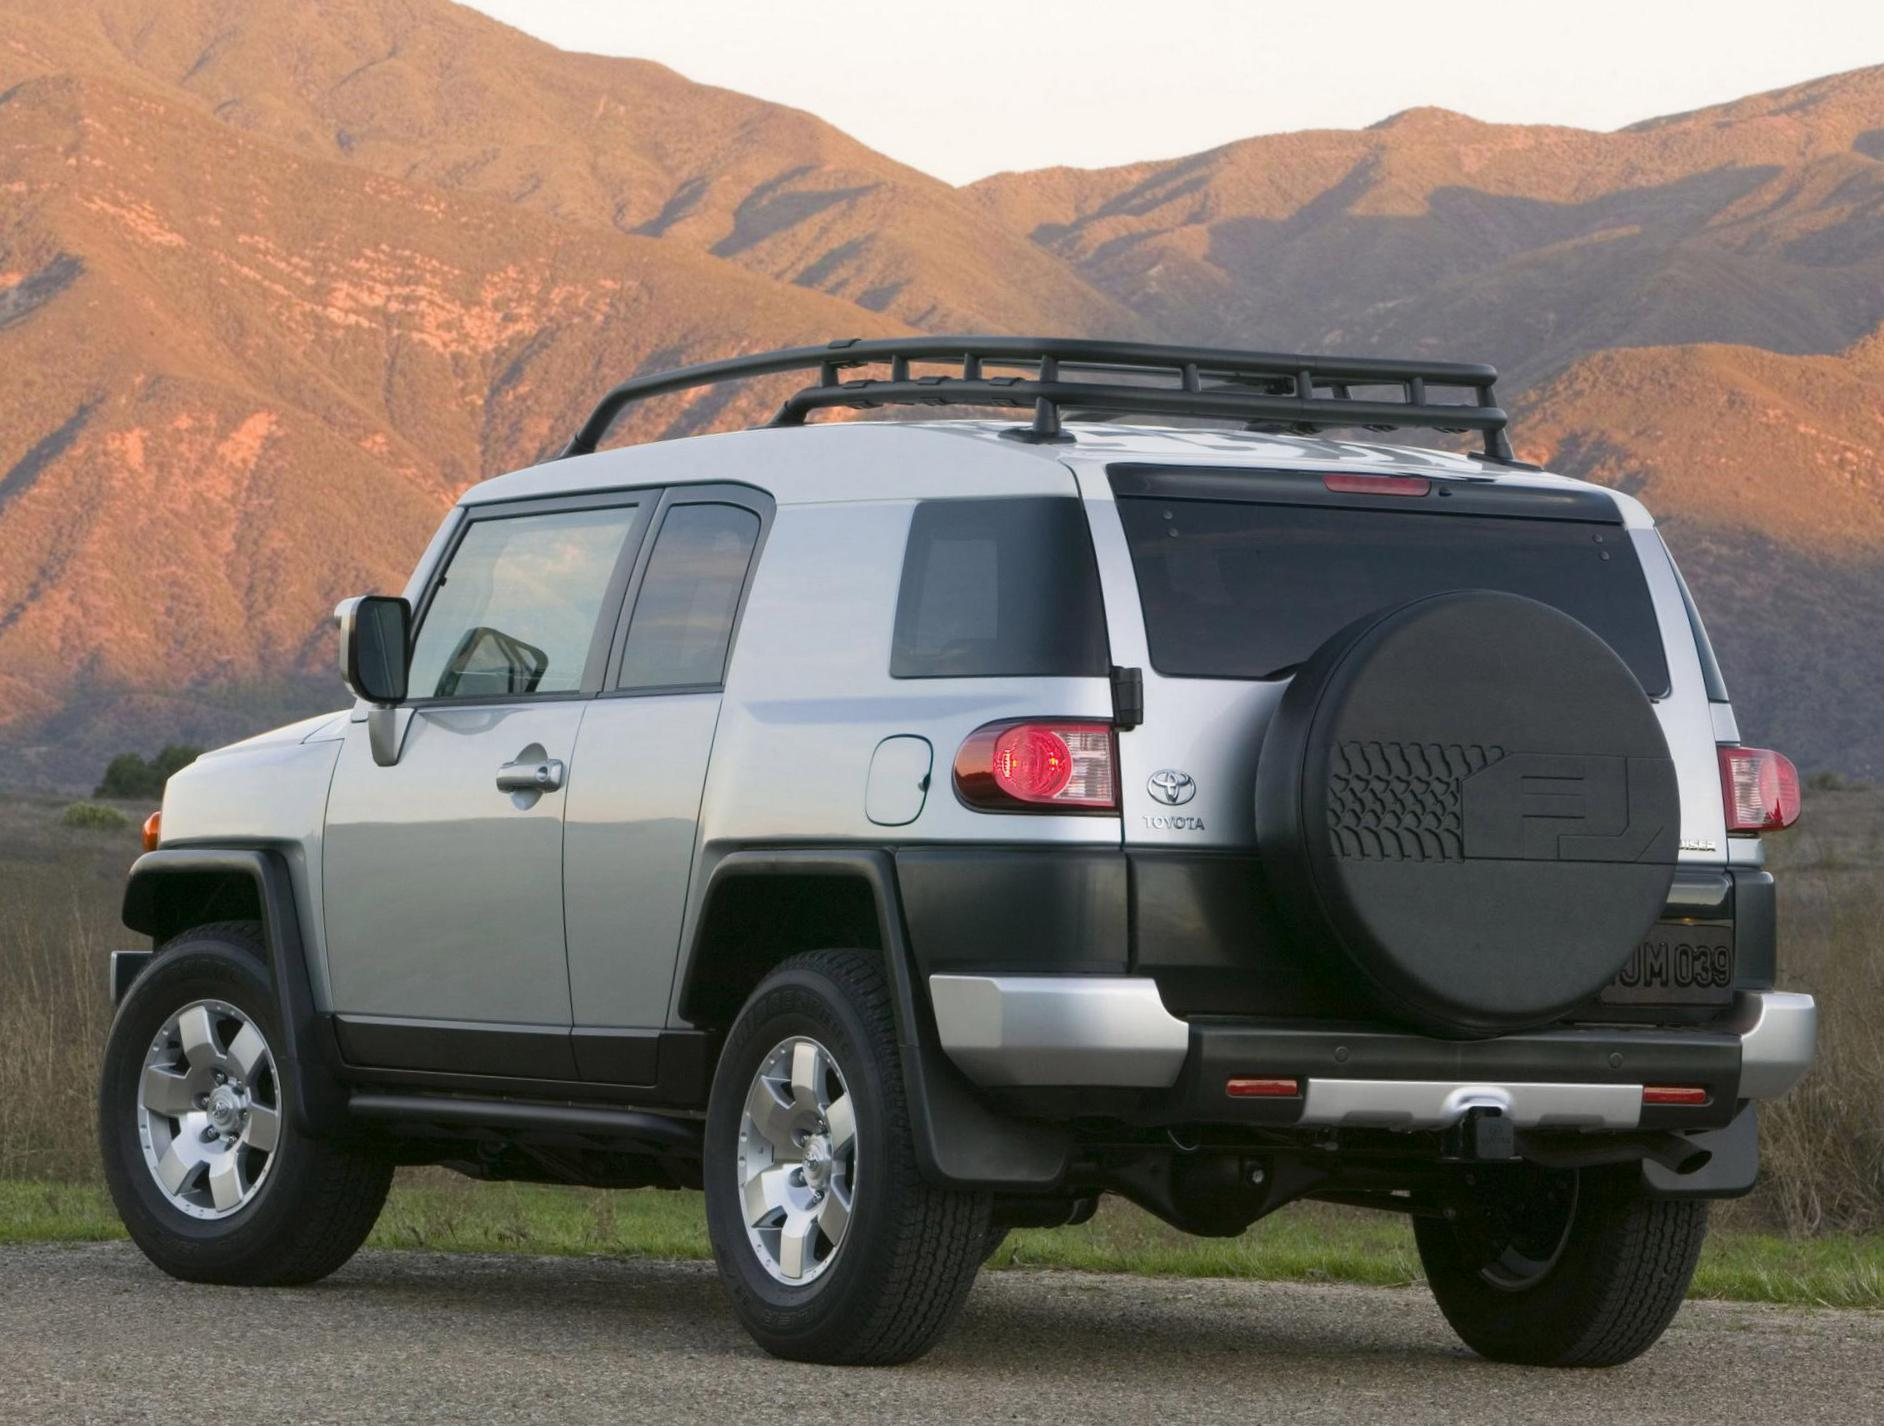 FJ Cruiser Toyota spec hatchback